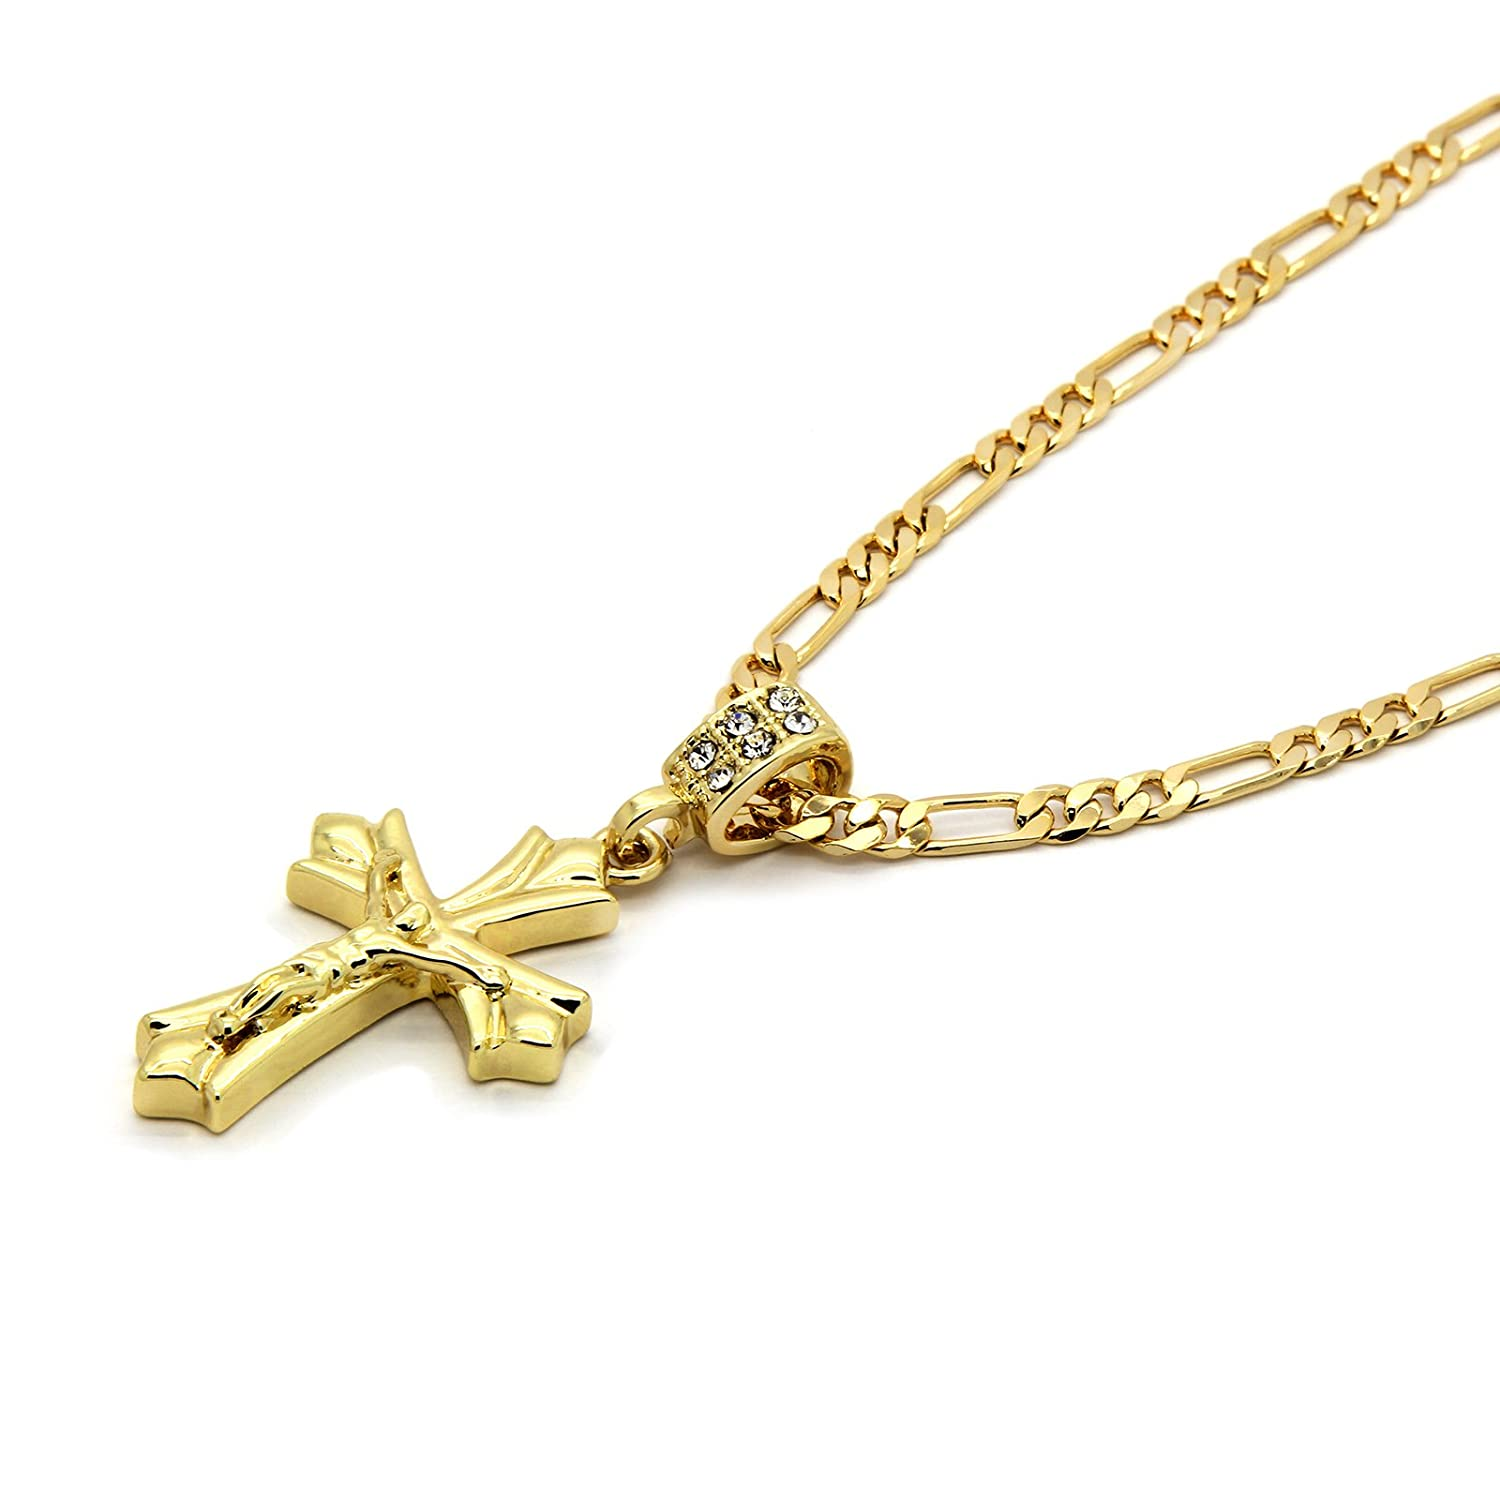 Gold Tone Patonce Cross Pendant Hip-hop 4mm 24